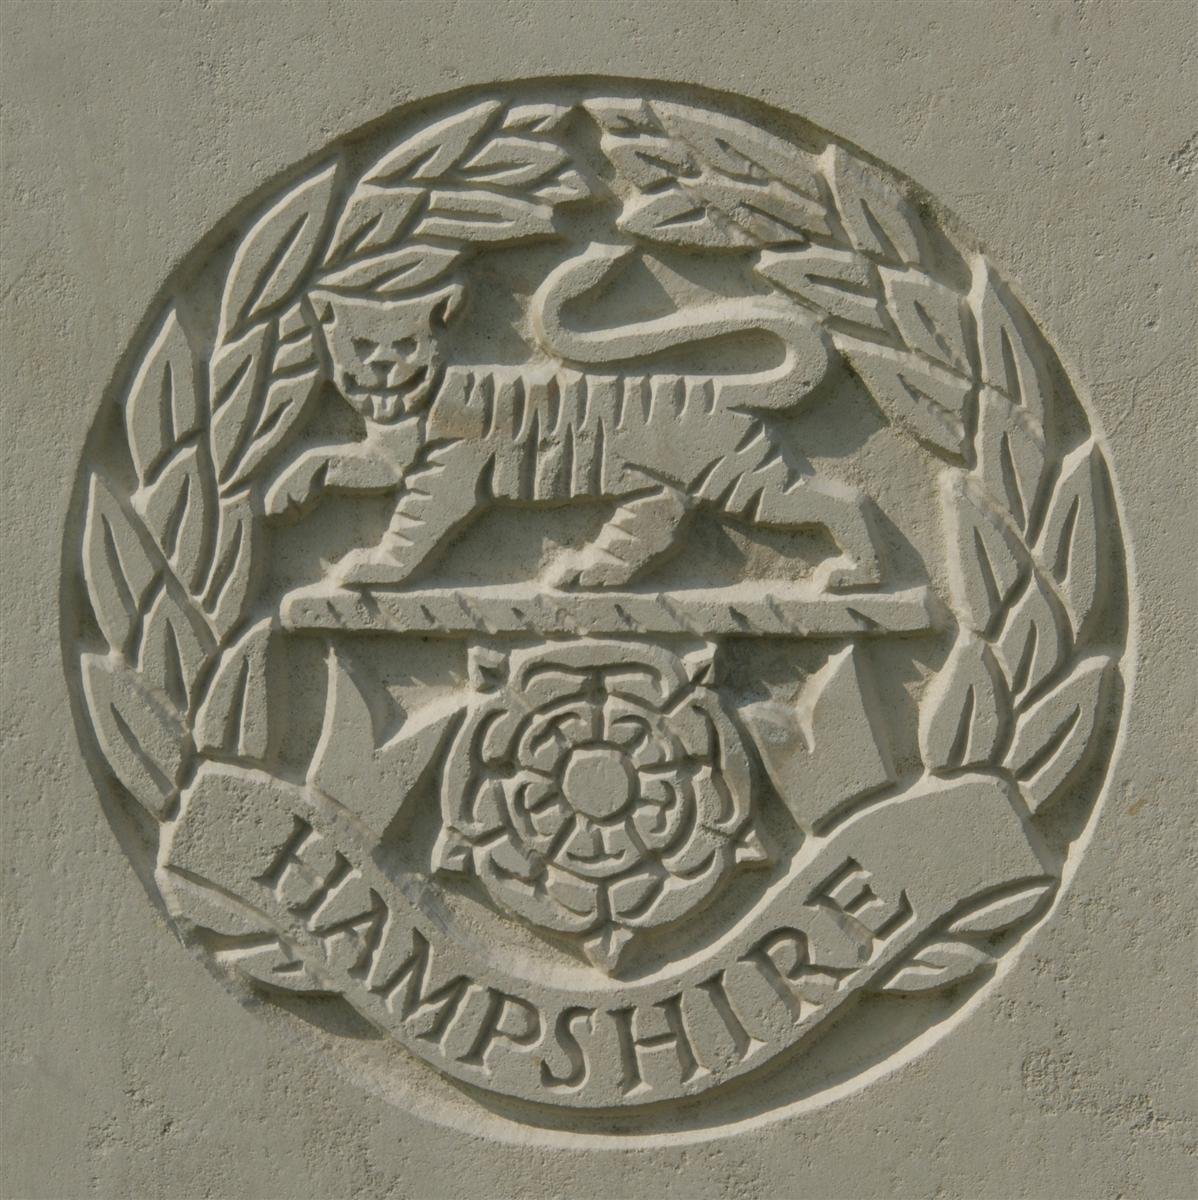 Hants badge